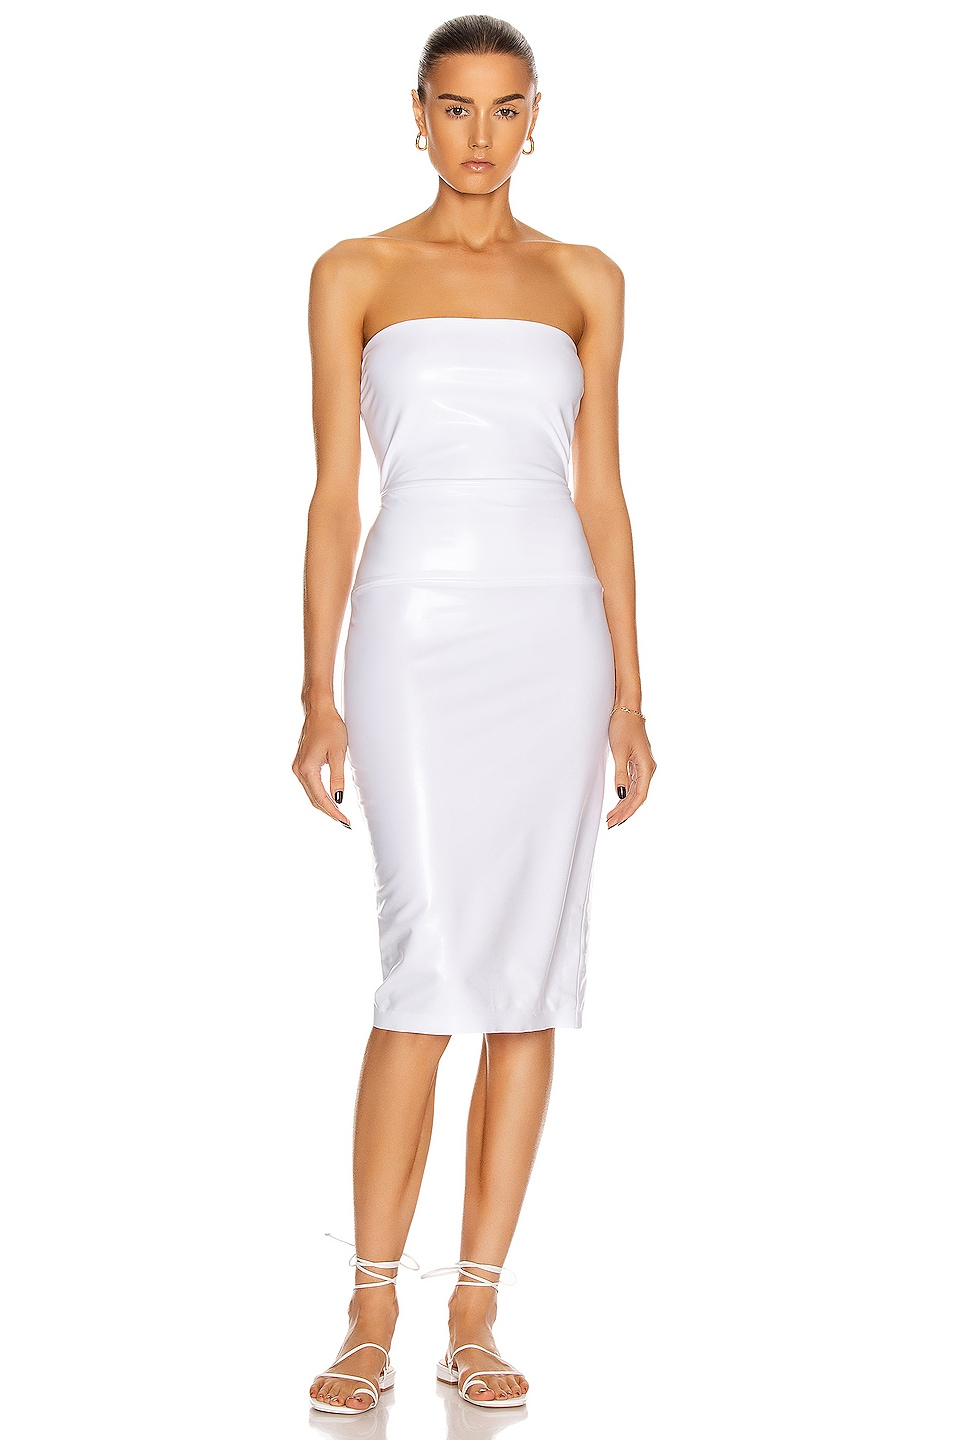 Image 1 of Norma Kamali for FWRD Strapless Dress in White Foil